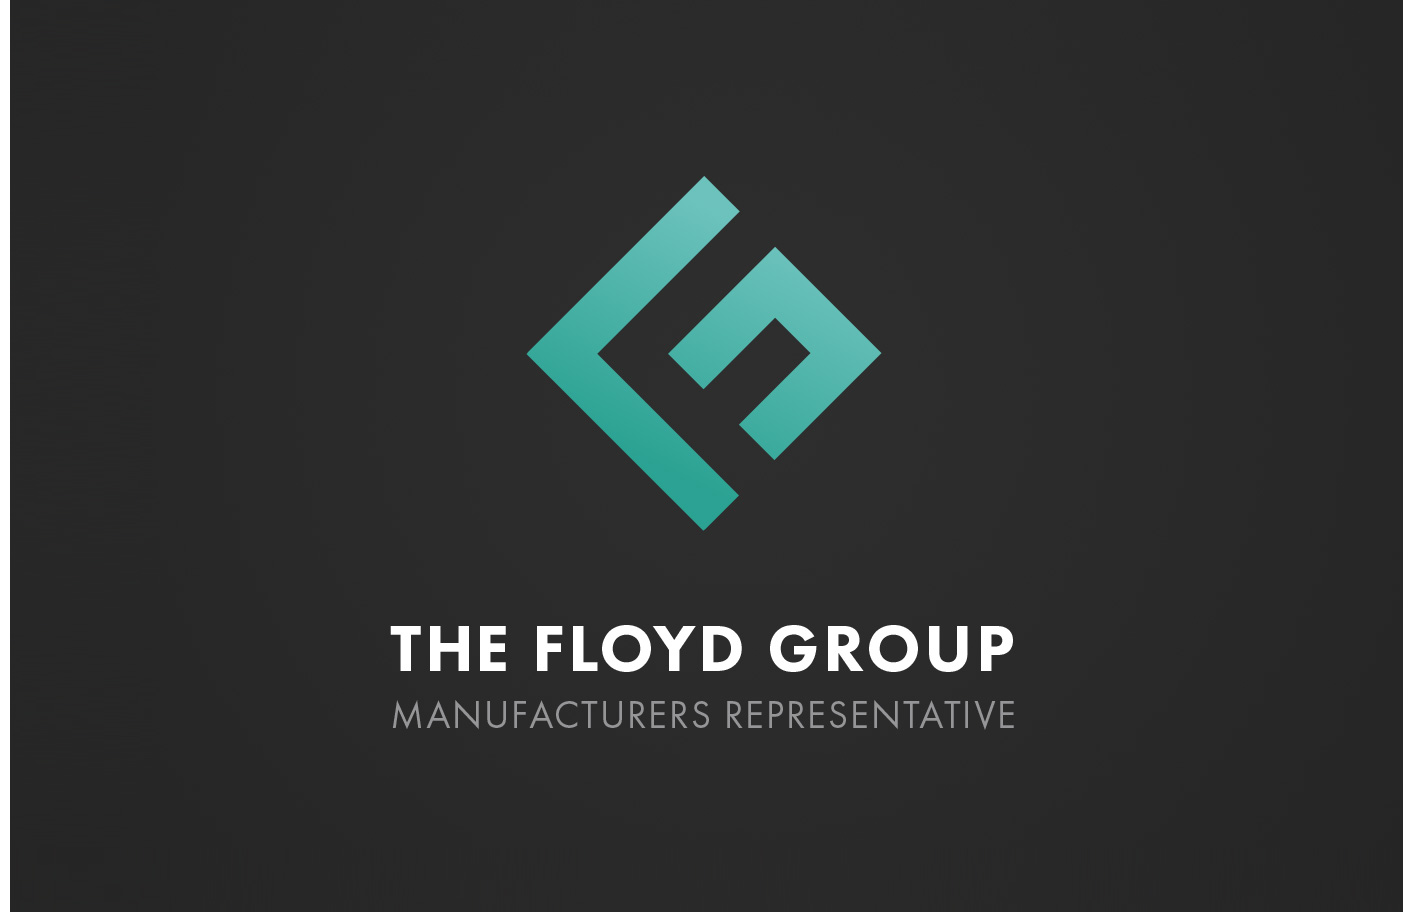 Logo Design and Branding The Floyd Group